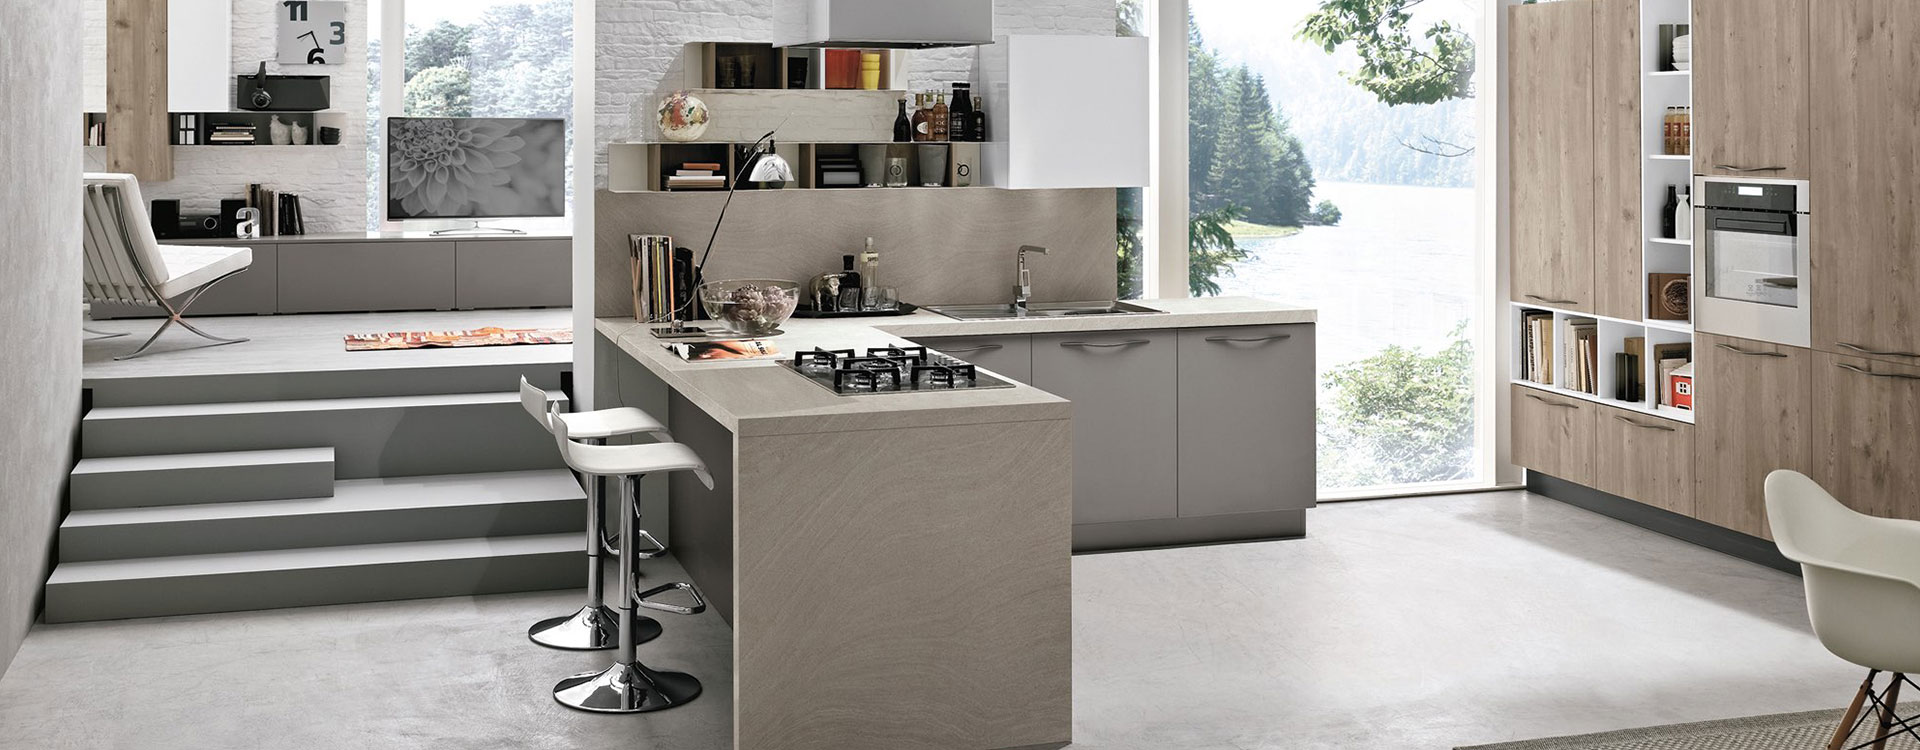 Modular Kitchen Jaipur